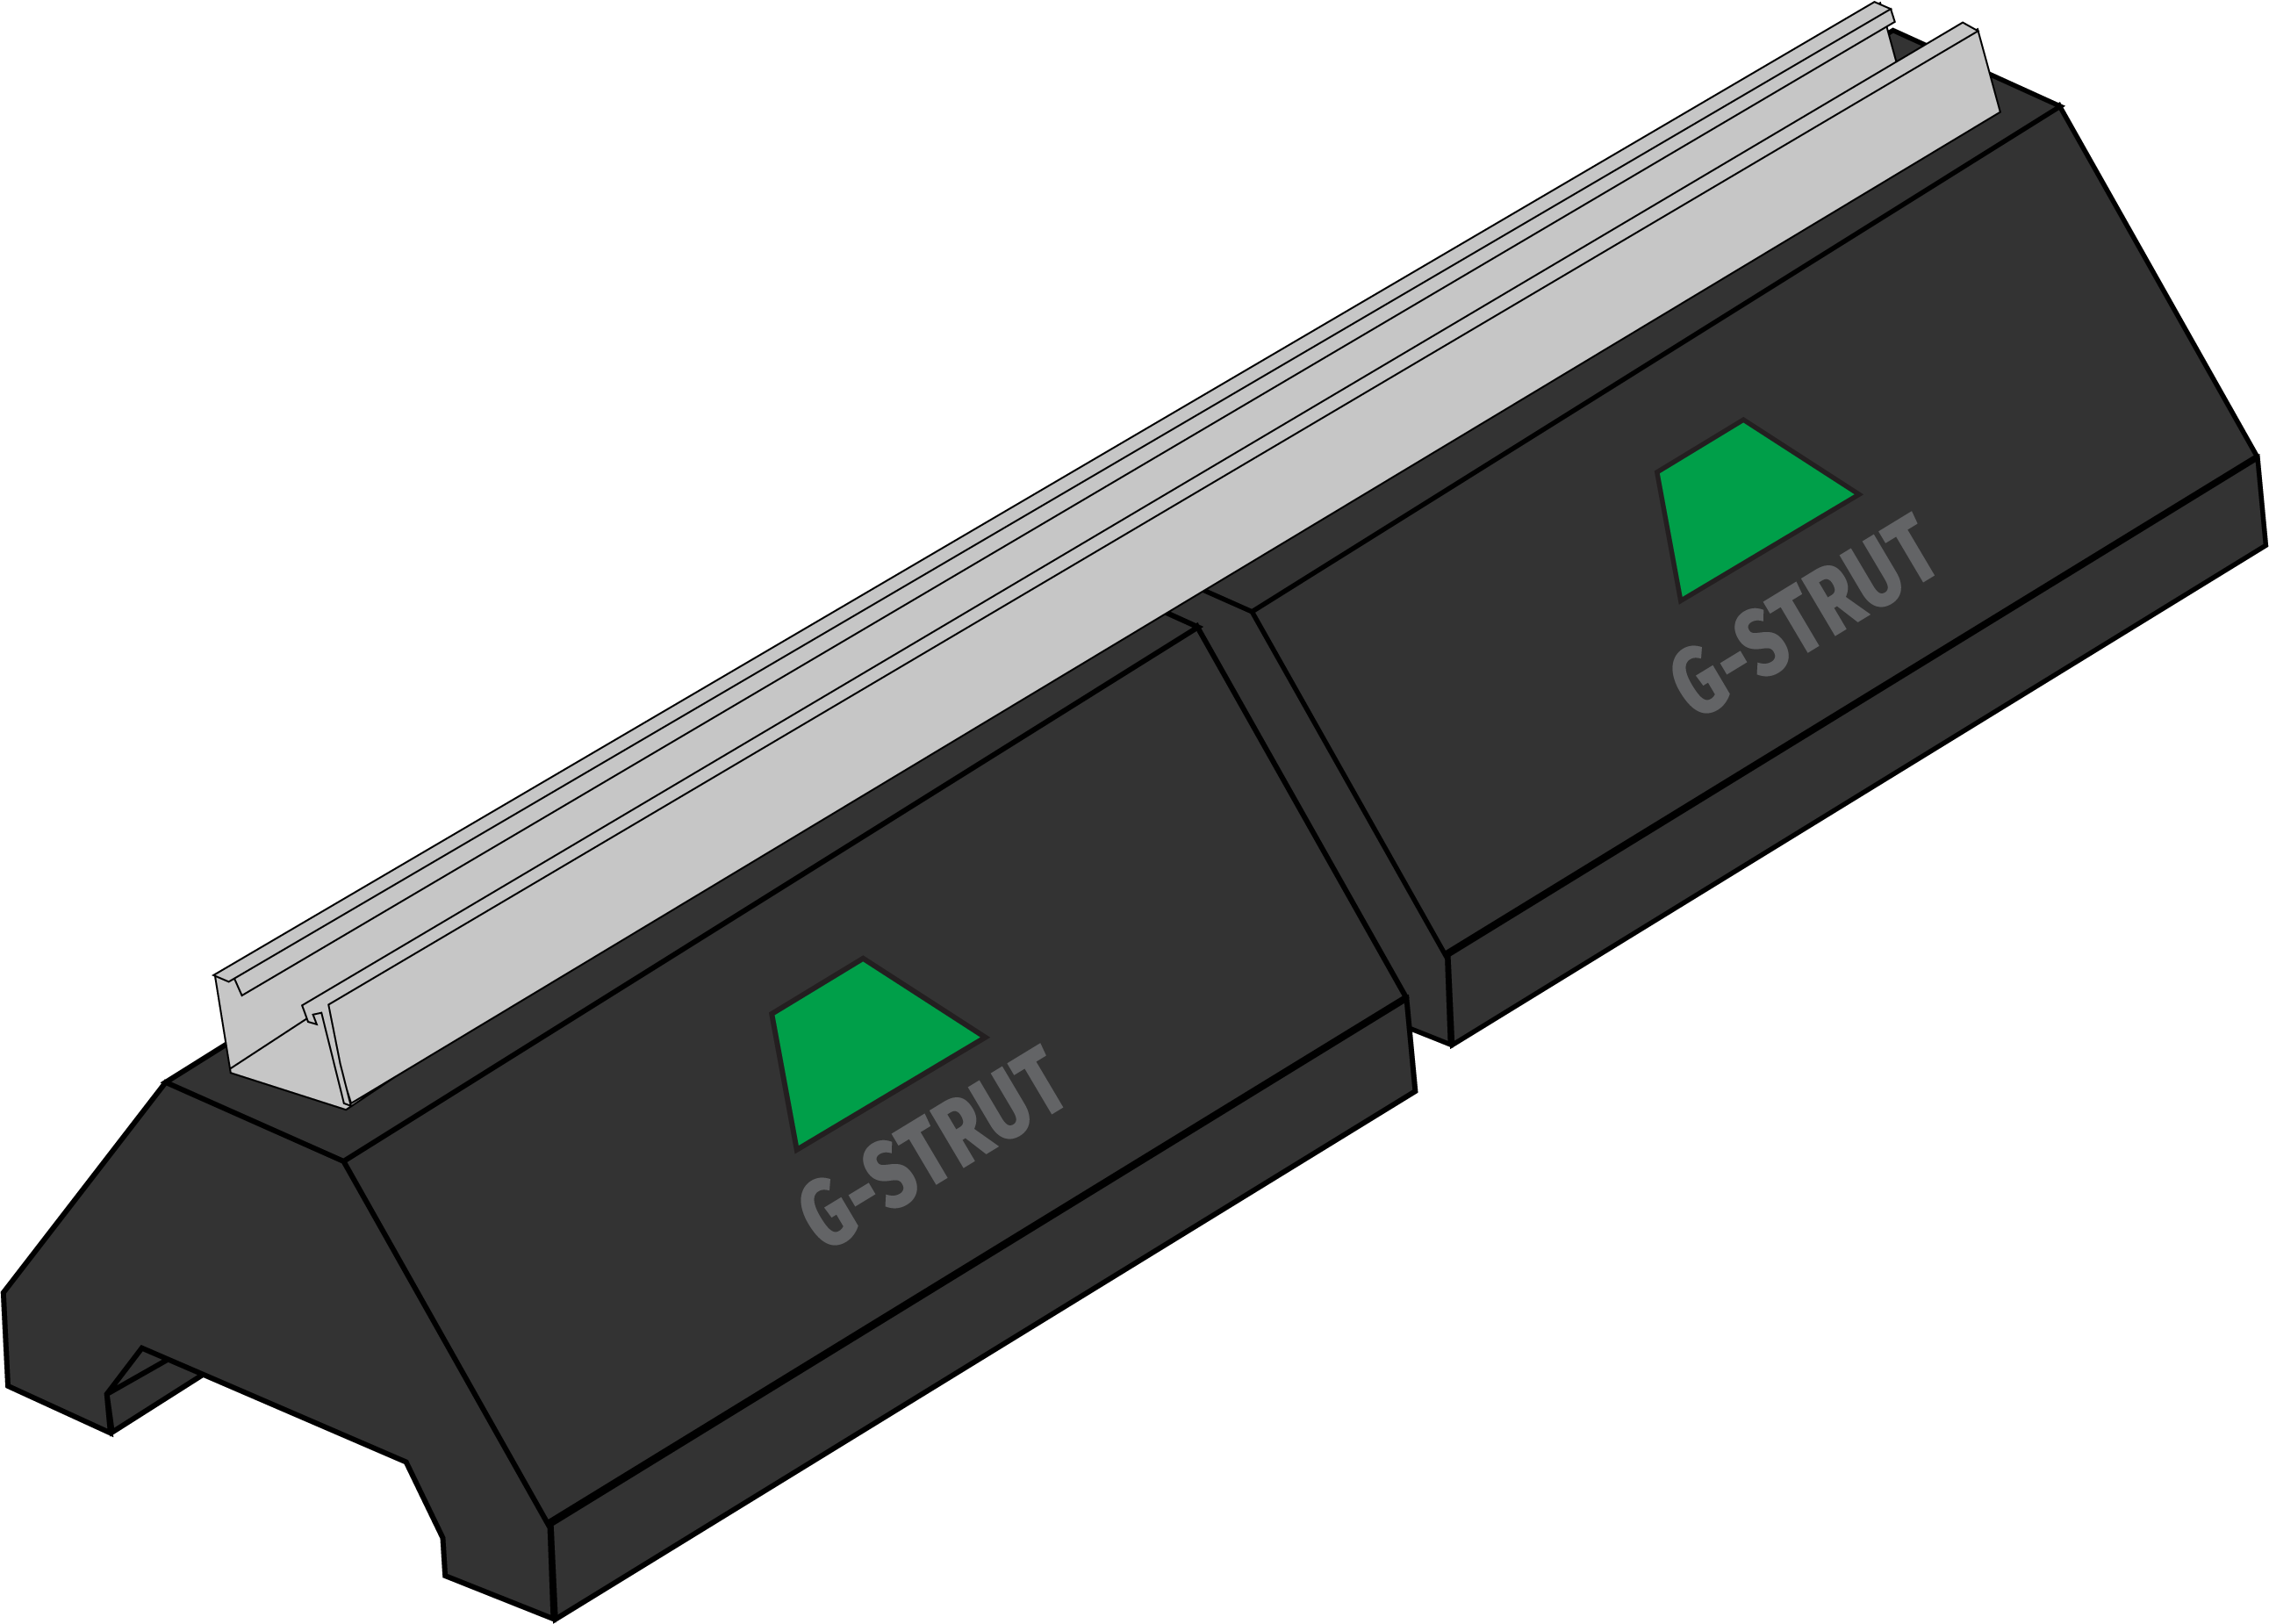 GRB102 Rooftop Support Block